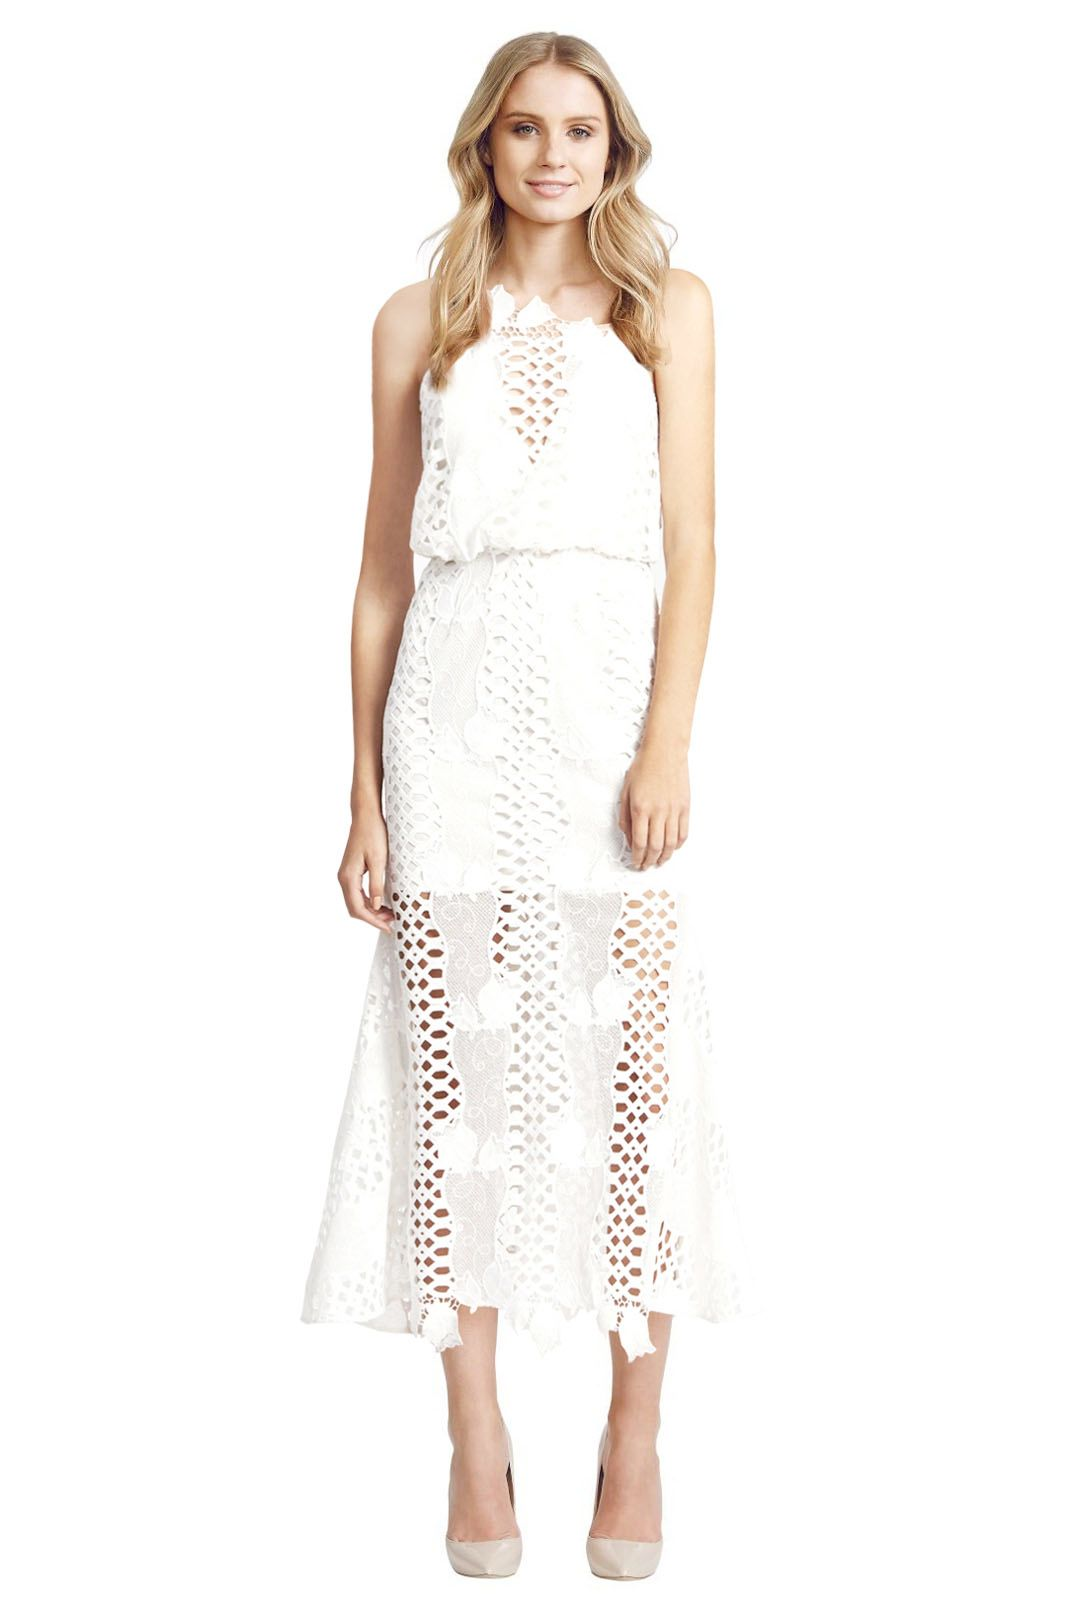 Alice McCall - Love Light Dress - White - Front